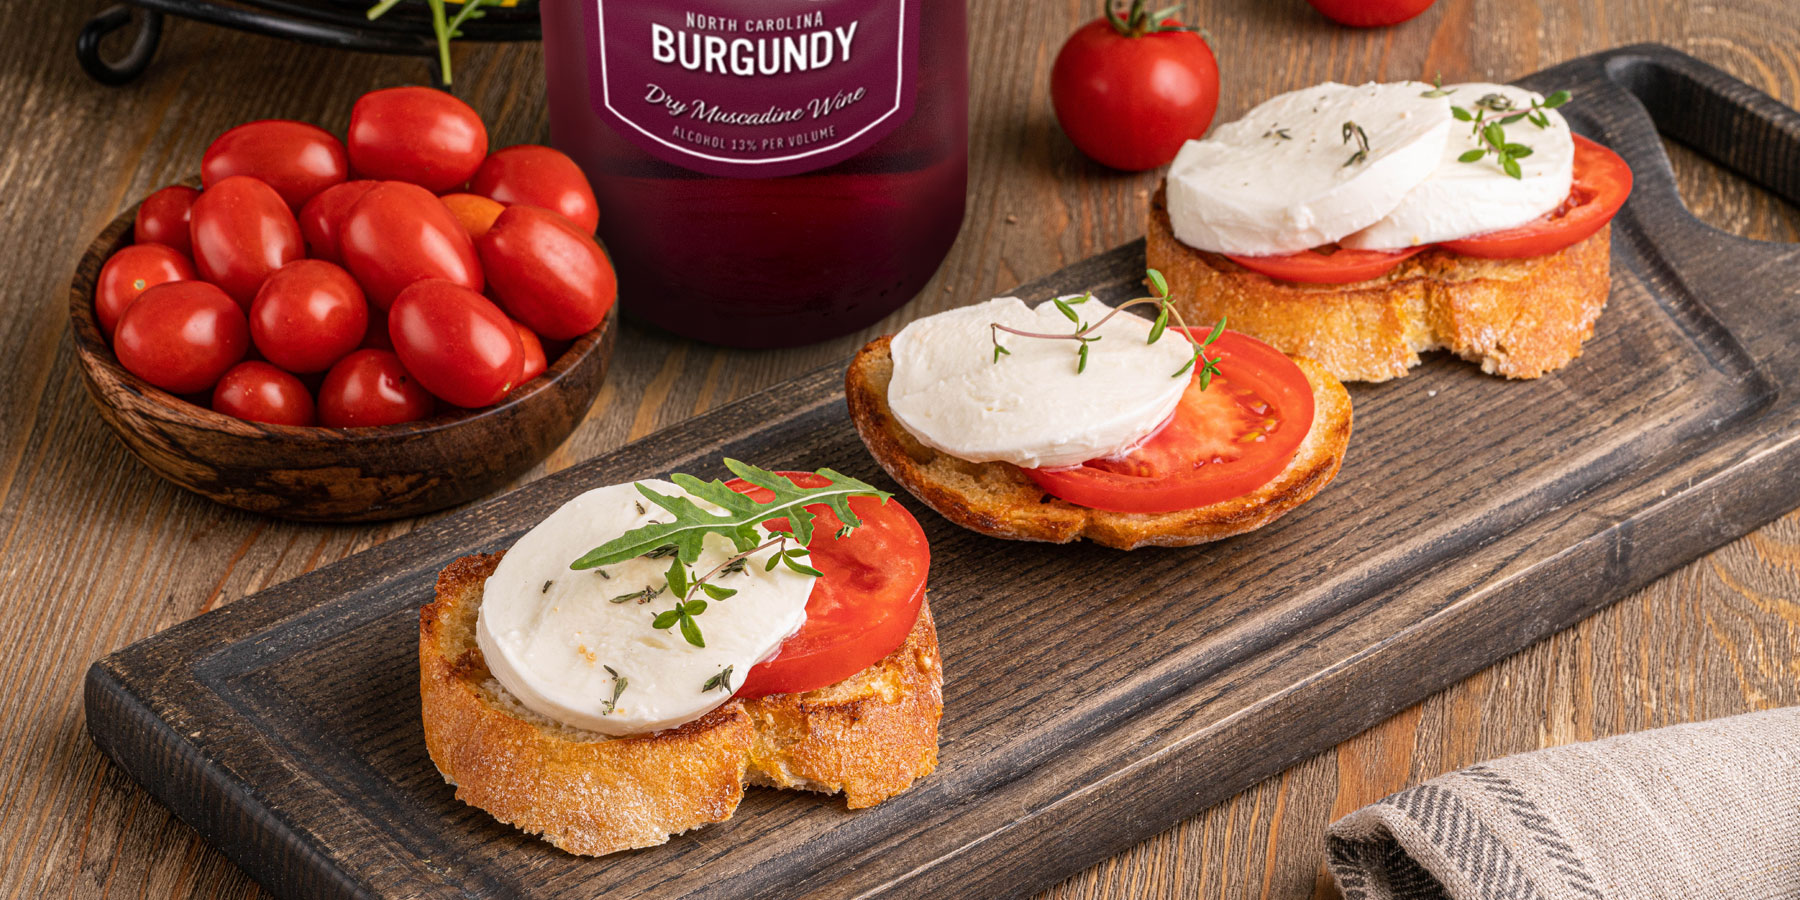 """Duplin """"Dine & Wine"""" host Frank uses an air fryer to make his grilled mozzarella tomato sandwich."""